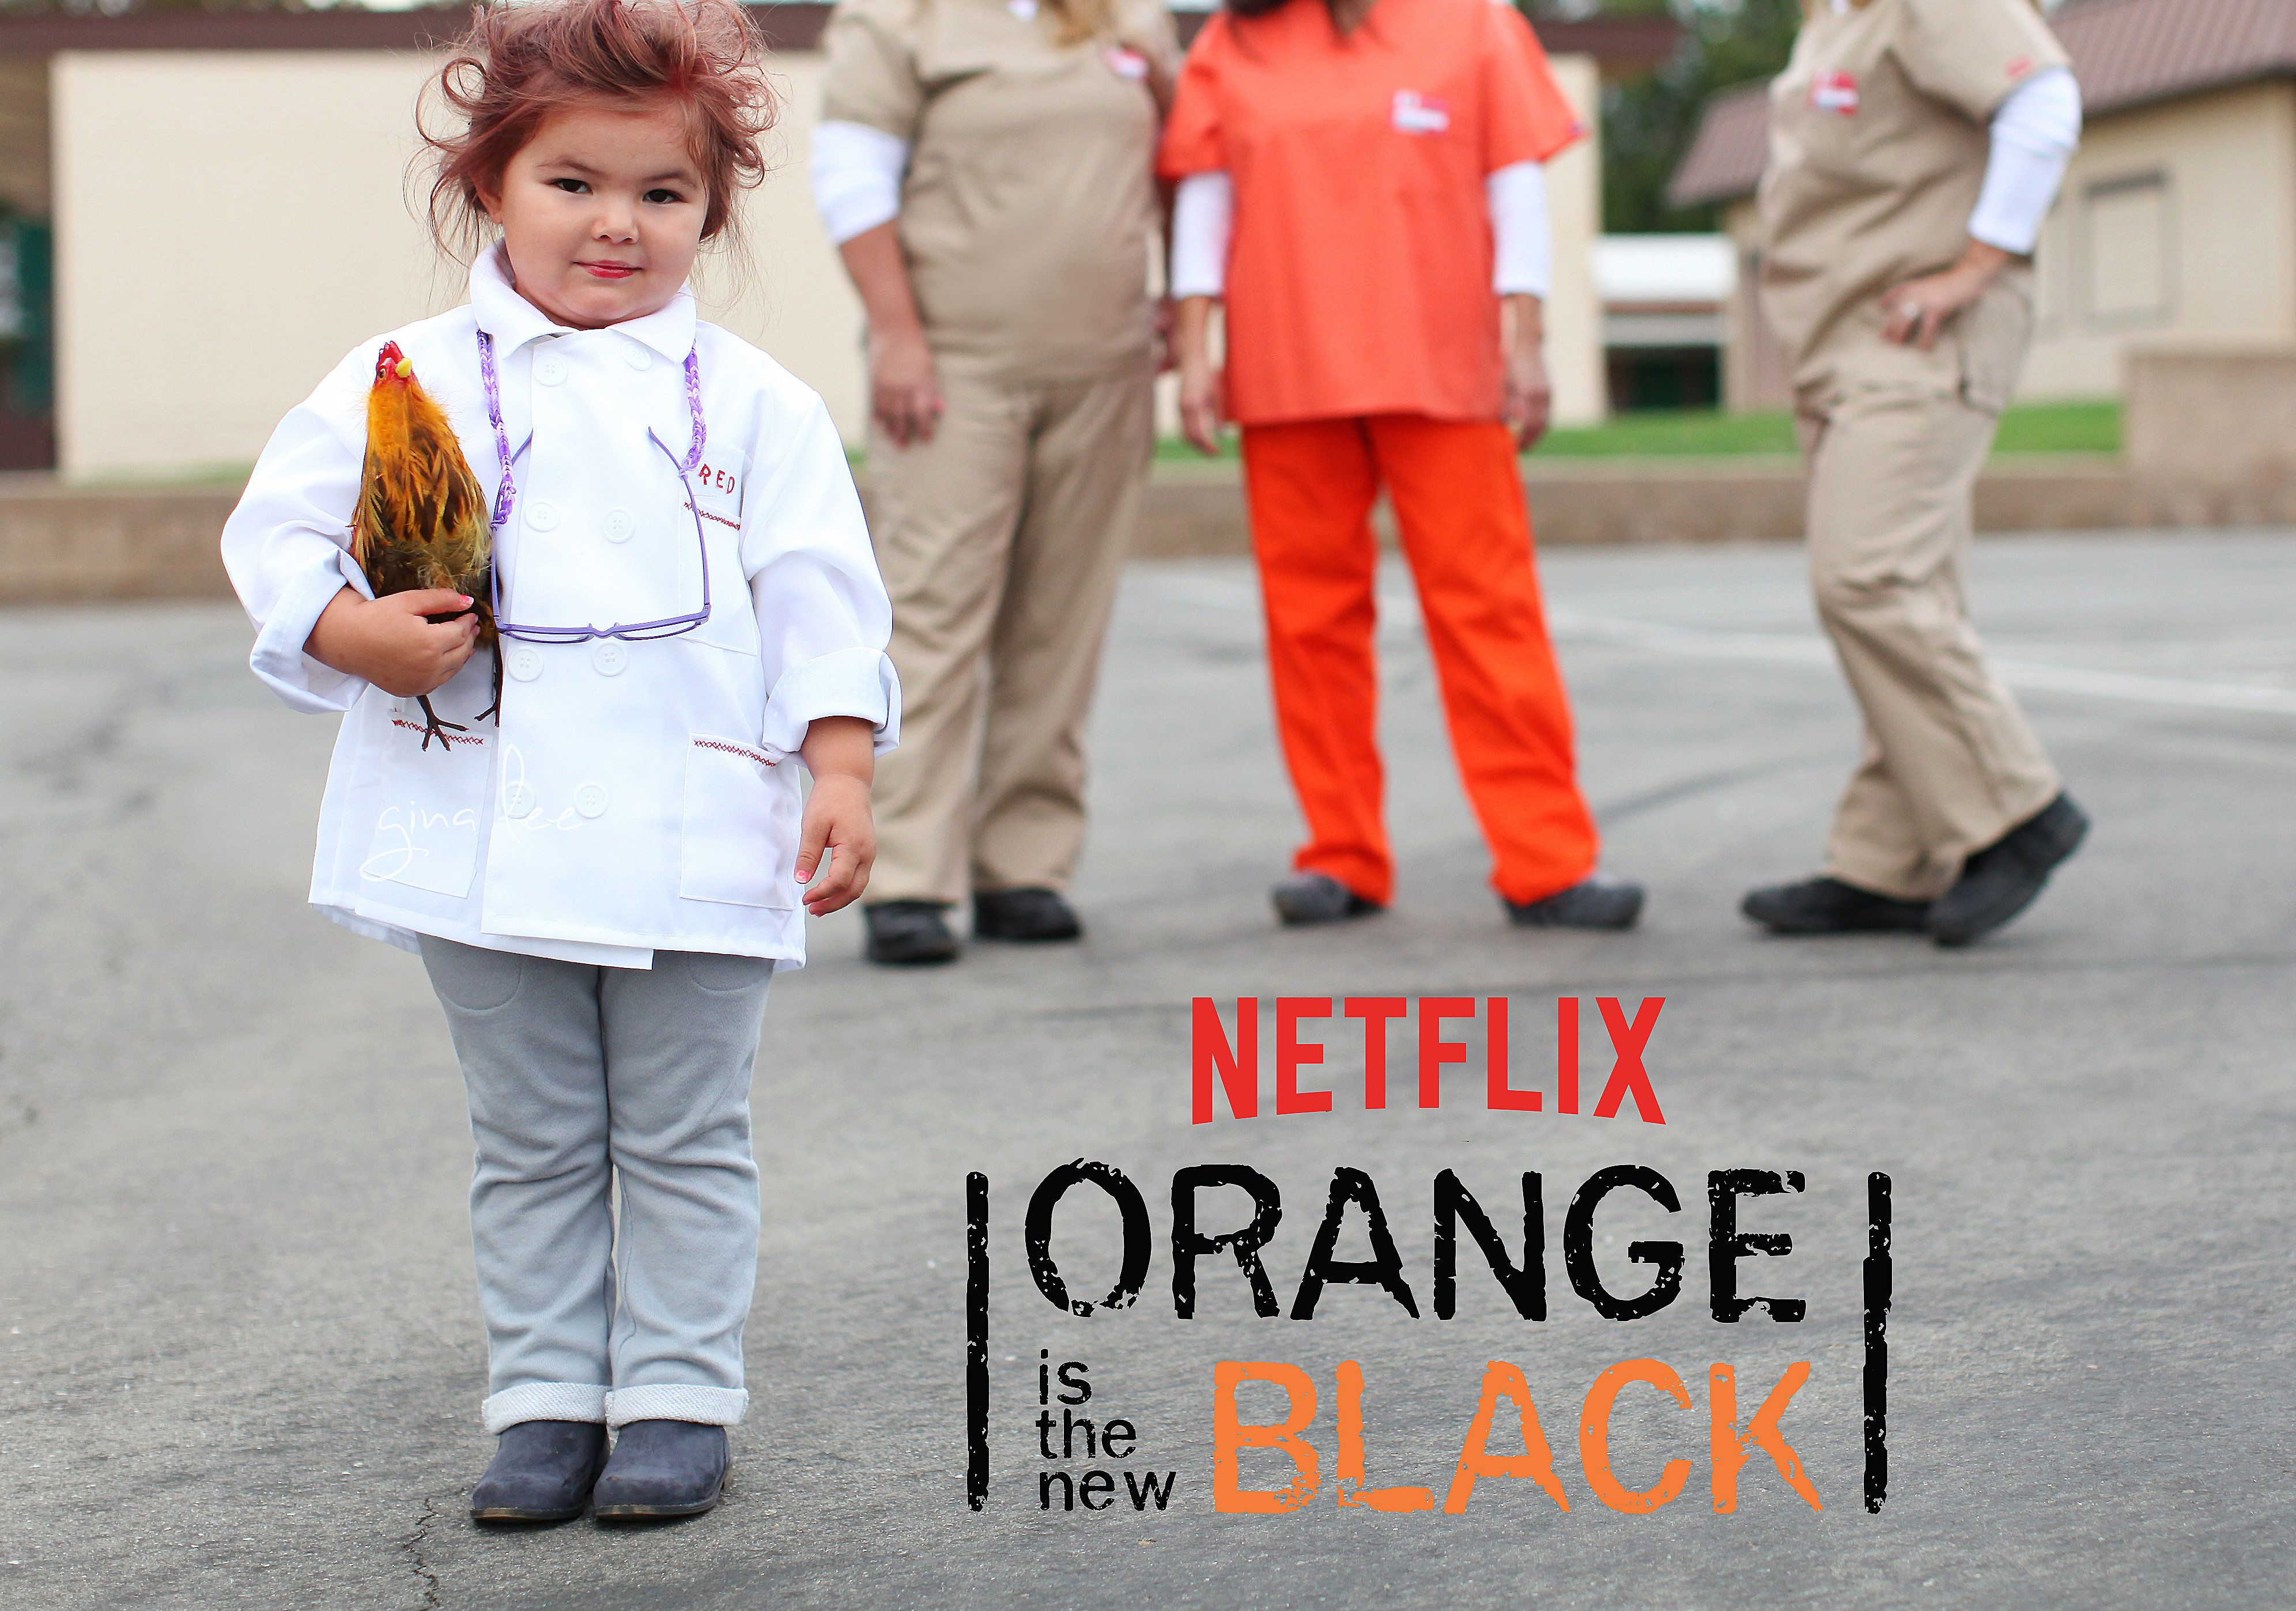 Halloween Costumes For S Age 2 | 3 Year Old Willow Takes Halloween To The Next Level With Her Amazing